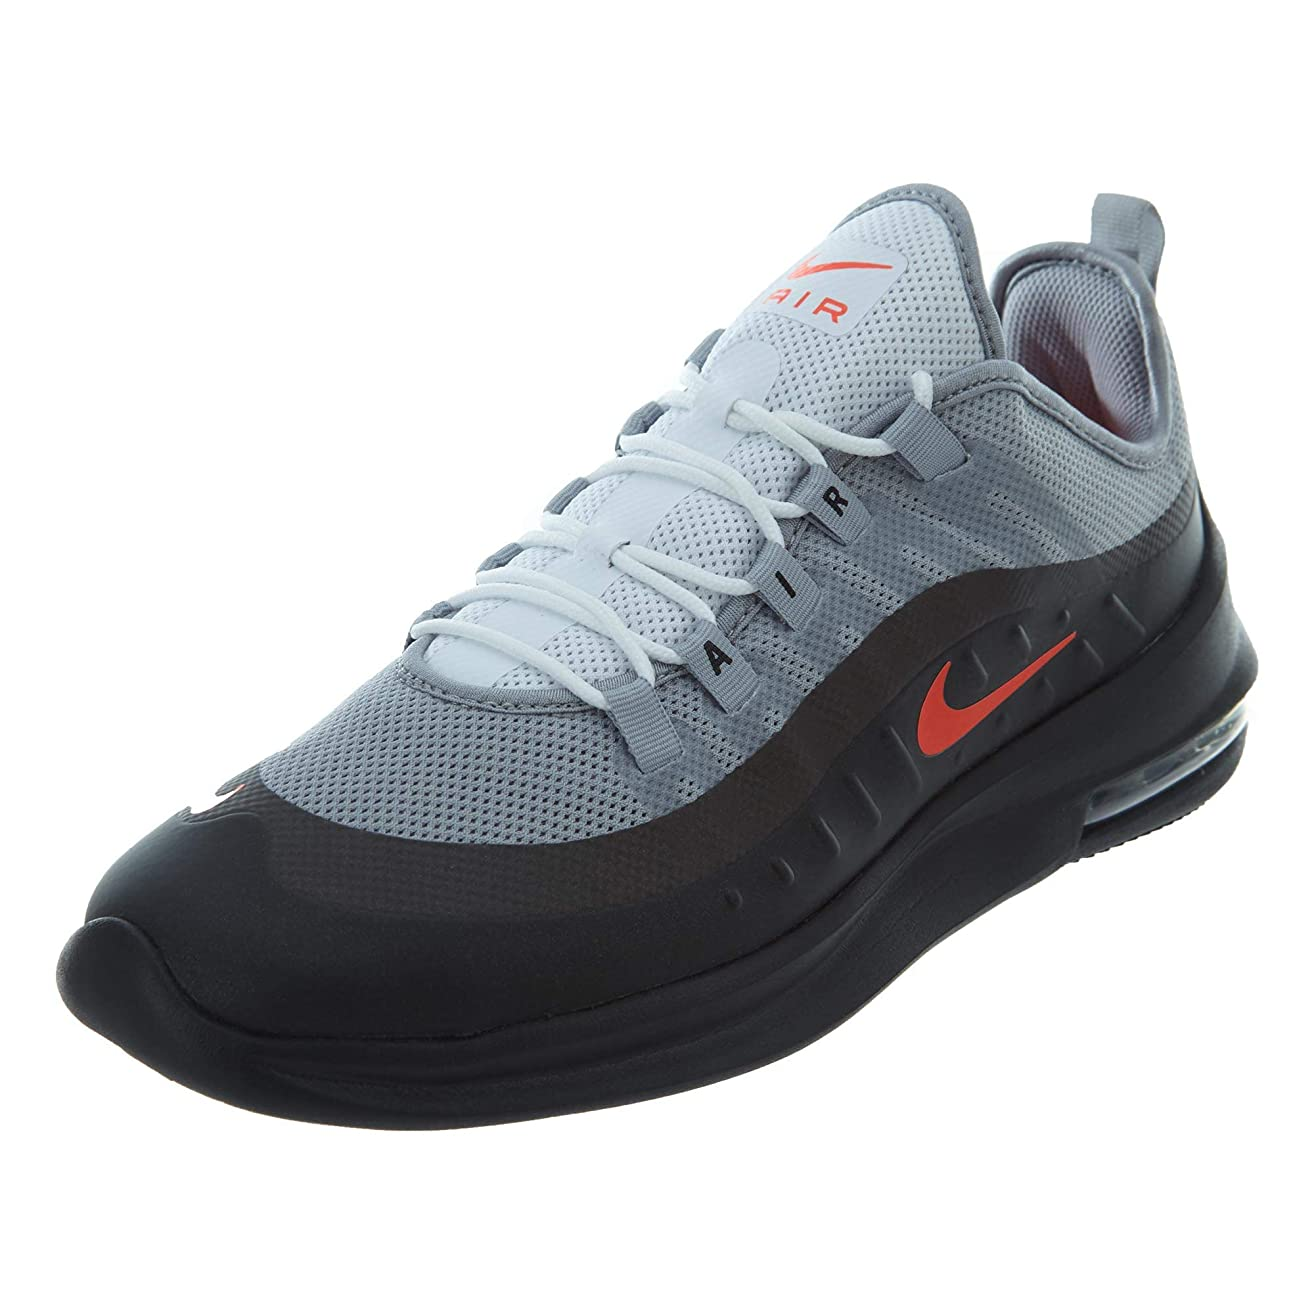 Nike Men's Air Max Axis Running Shoe, Wolf Grey/Total Crimson/Black/Anthracite, Size 10.5